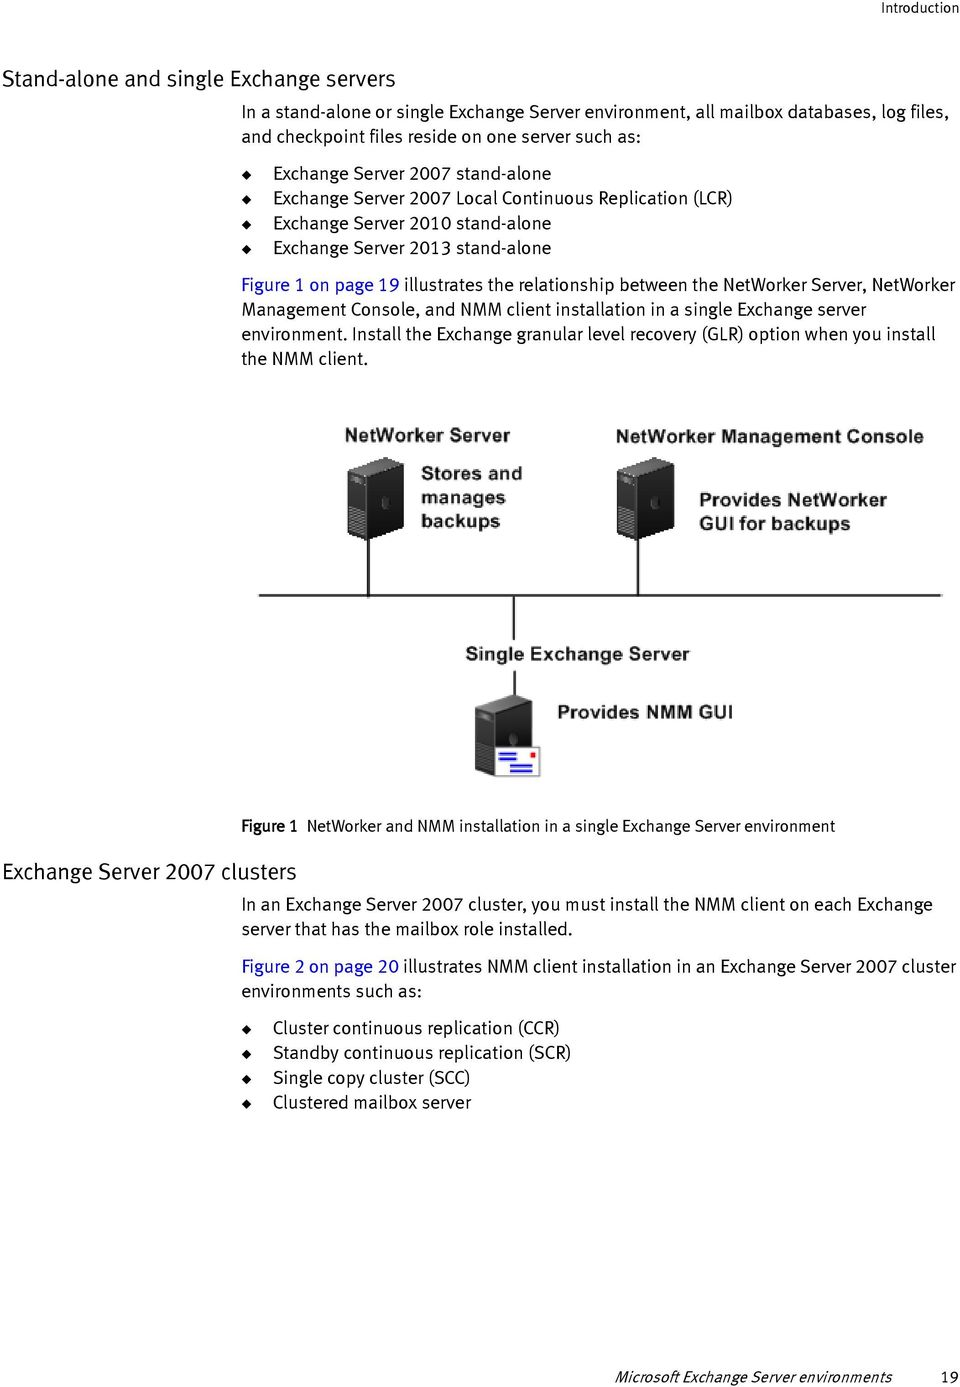 relationship between the NetWorker Server, NetWorker Management Console, and NMM client installation in a single Exchange server environment.